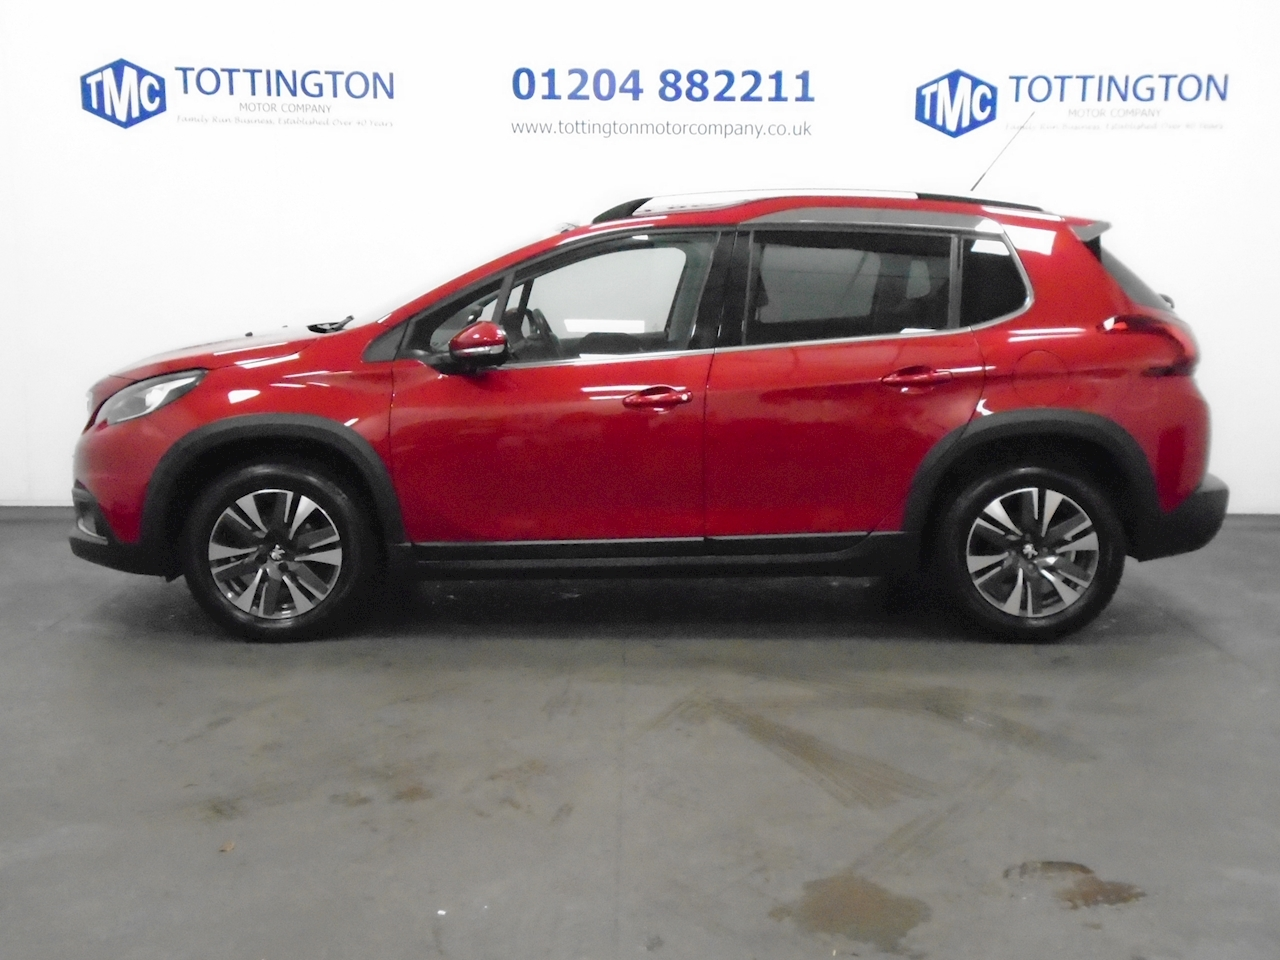 Peugeot 2008 Allure 1.2 5dr SUV Manual Petrol